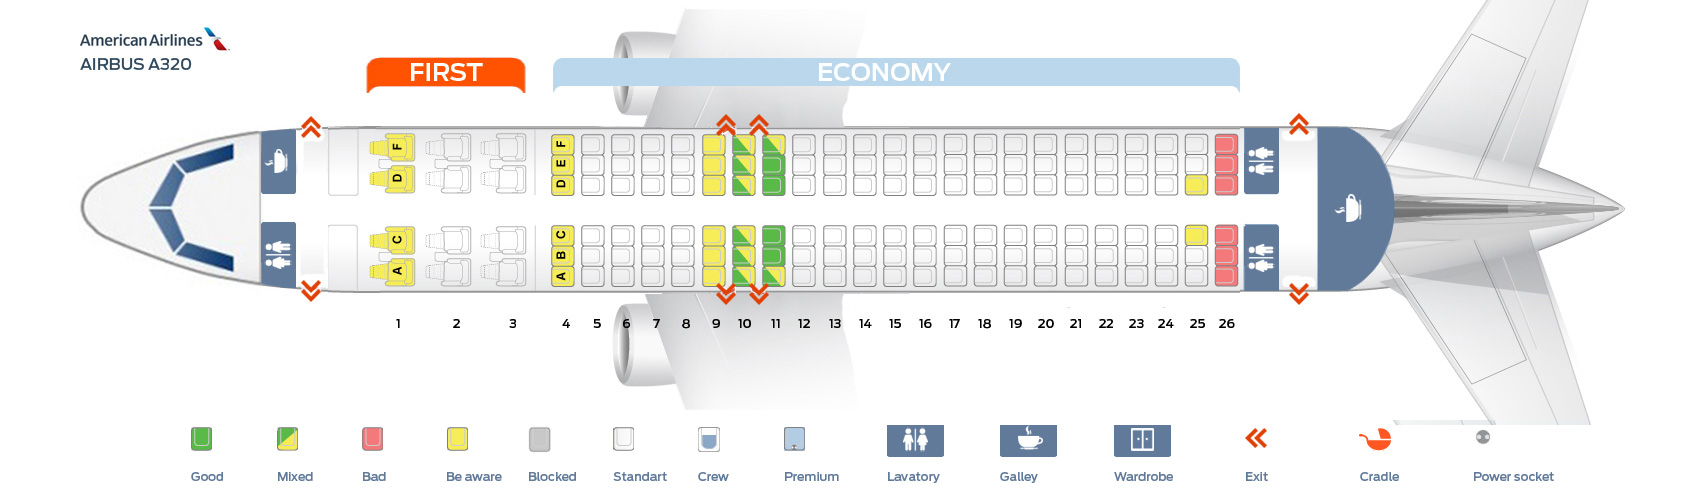 Seat_map_Airbus_A320_American_Airlines